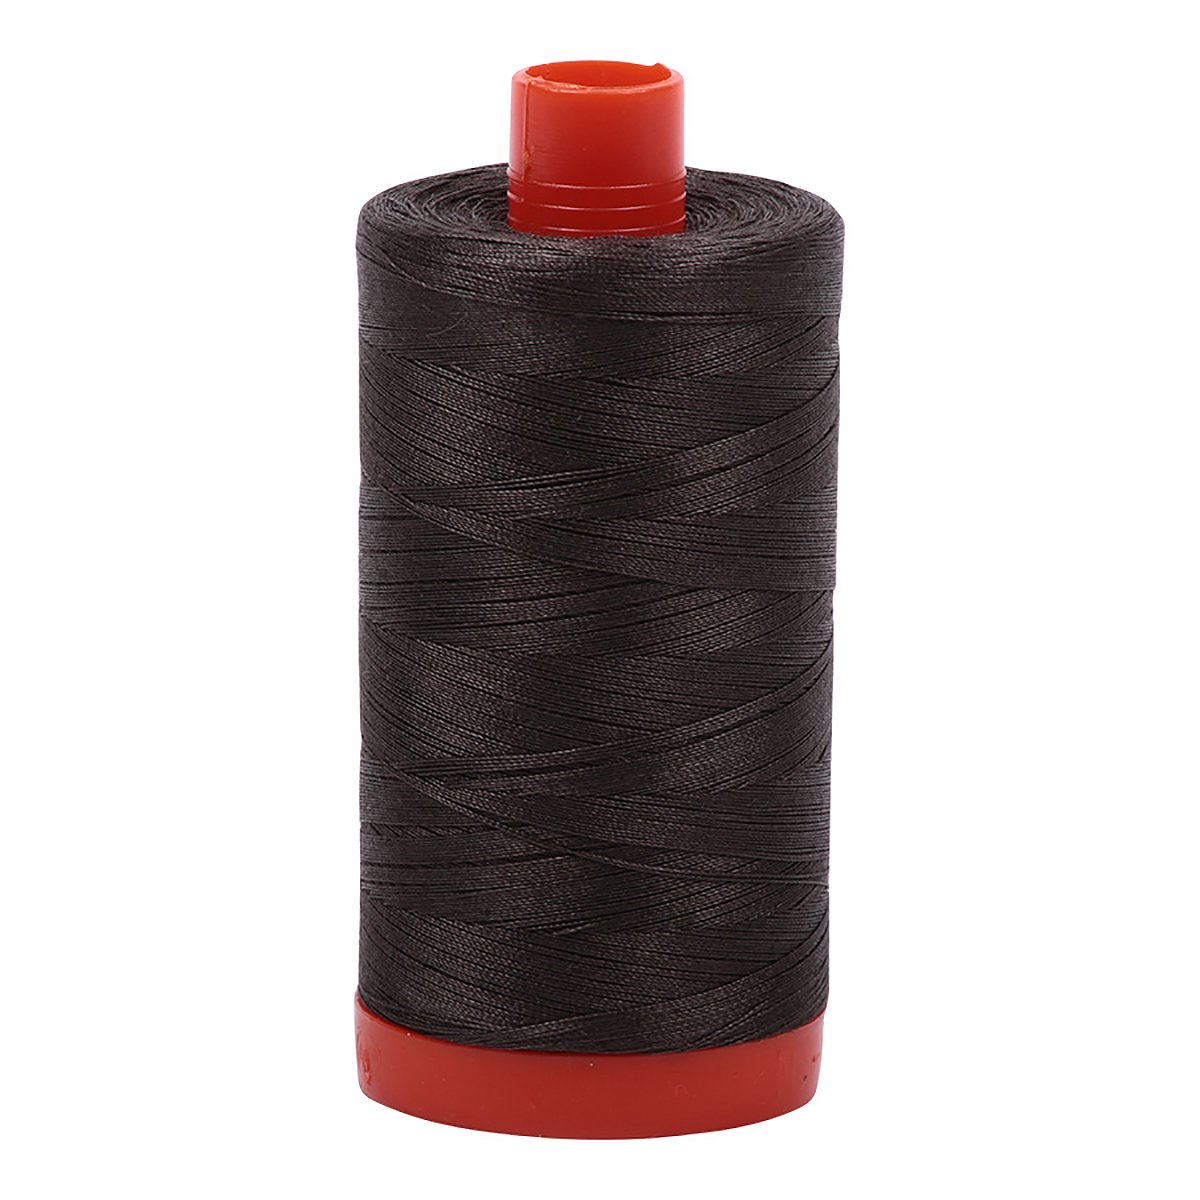 Aurifil A1050-5013 Solid 50wt 1422yds Asphalt Mako Cotton Thread Aurifil USA